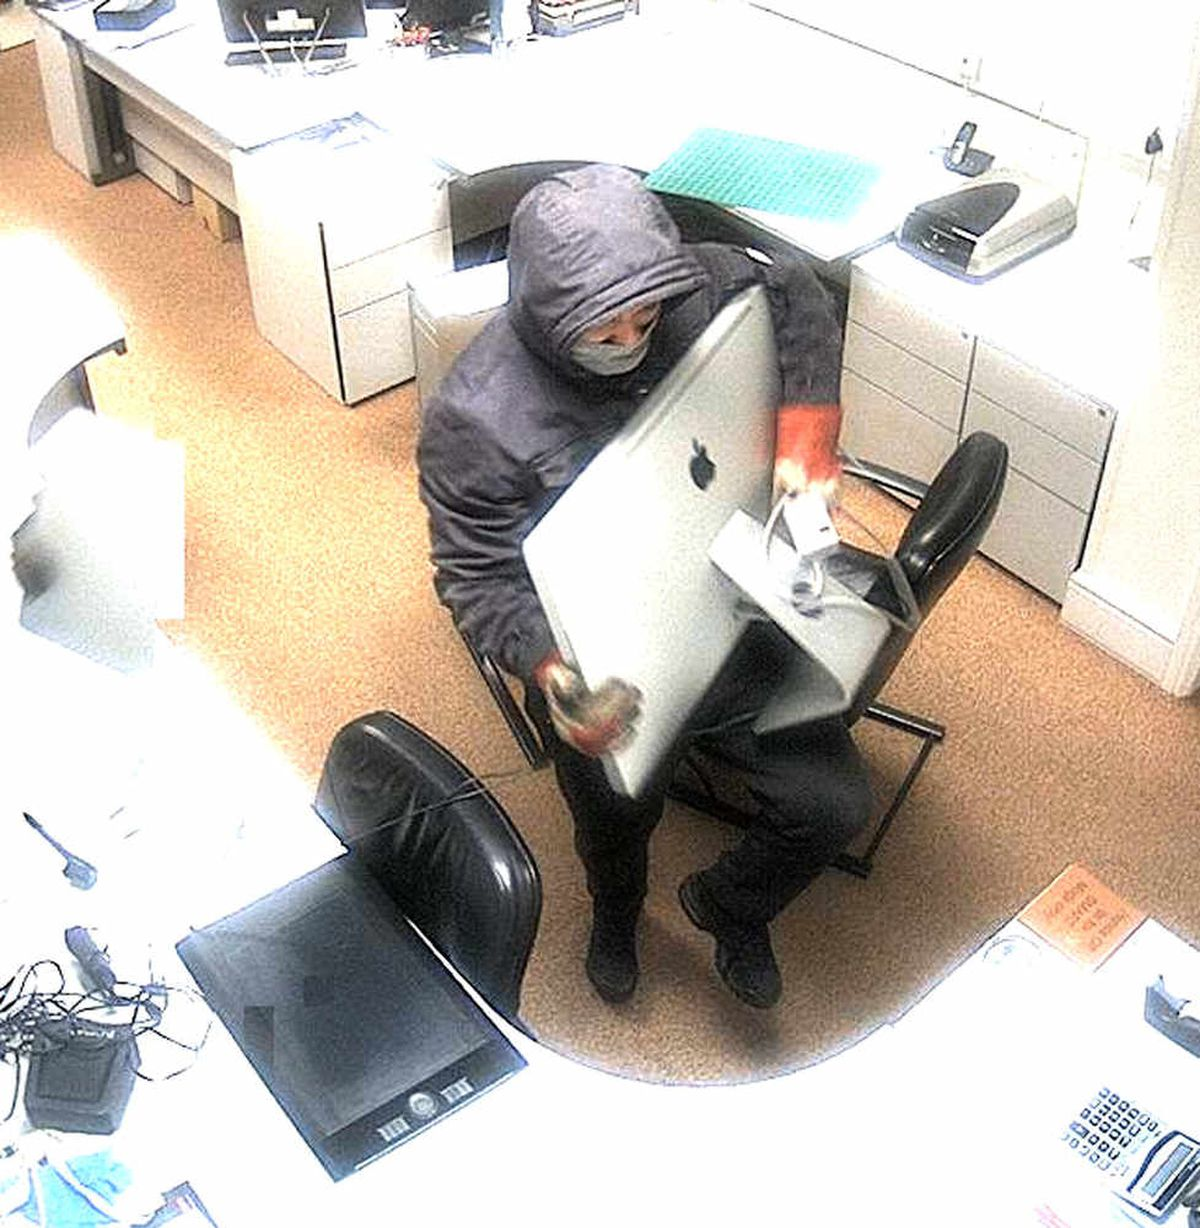 CCTV captures one of the thieves at Doodah Creative